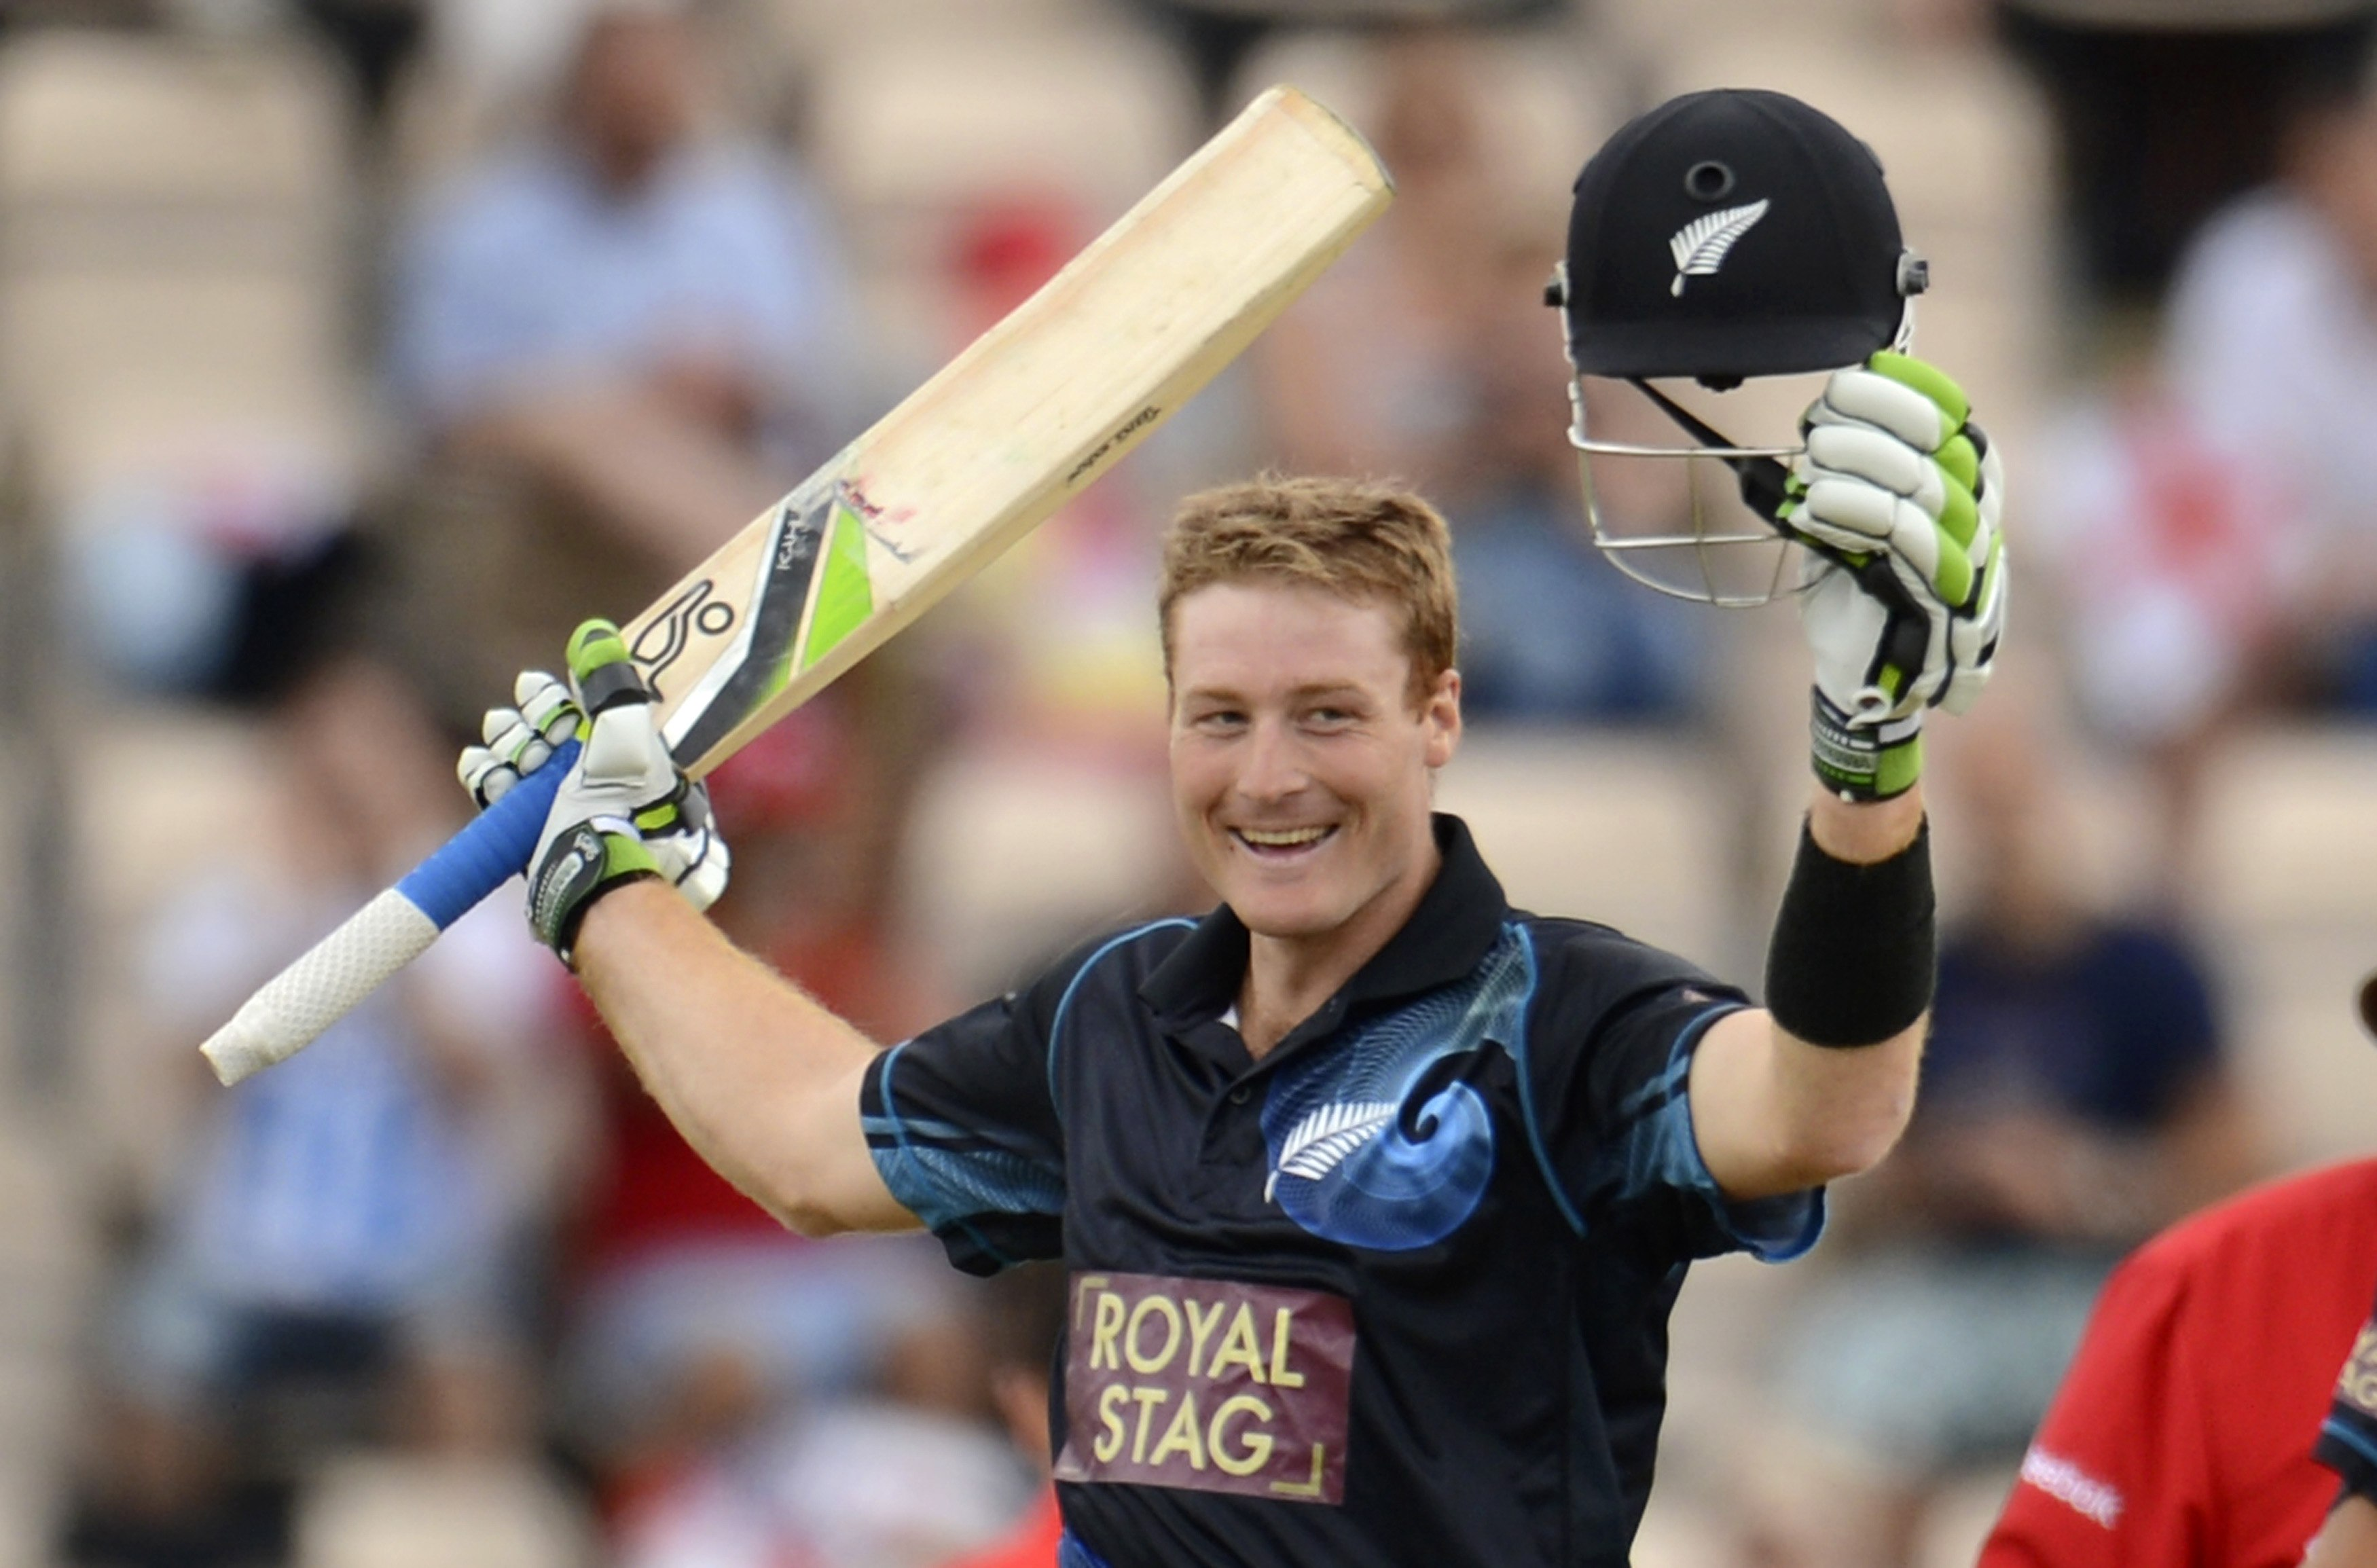 New Zealand's Guptill celebrates reaching his century during their second one-day international cricket match against England at the Ageas Bowl cricket ground in Southampton